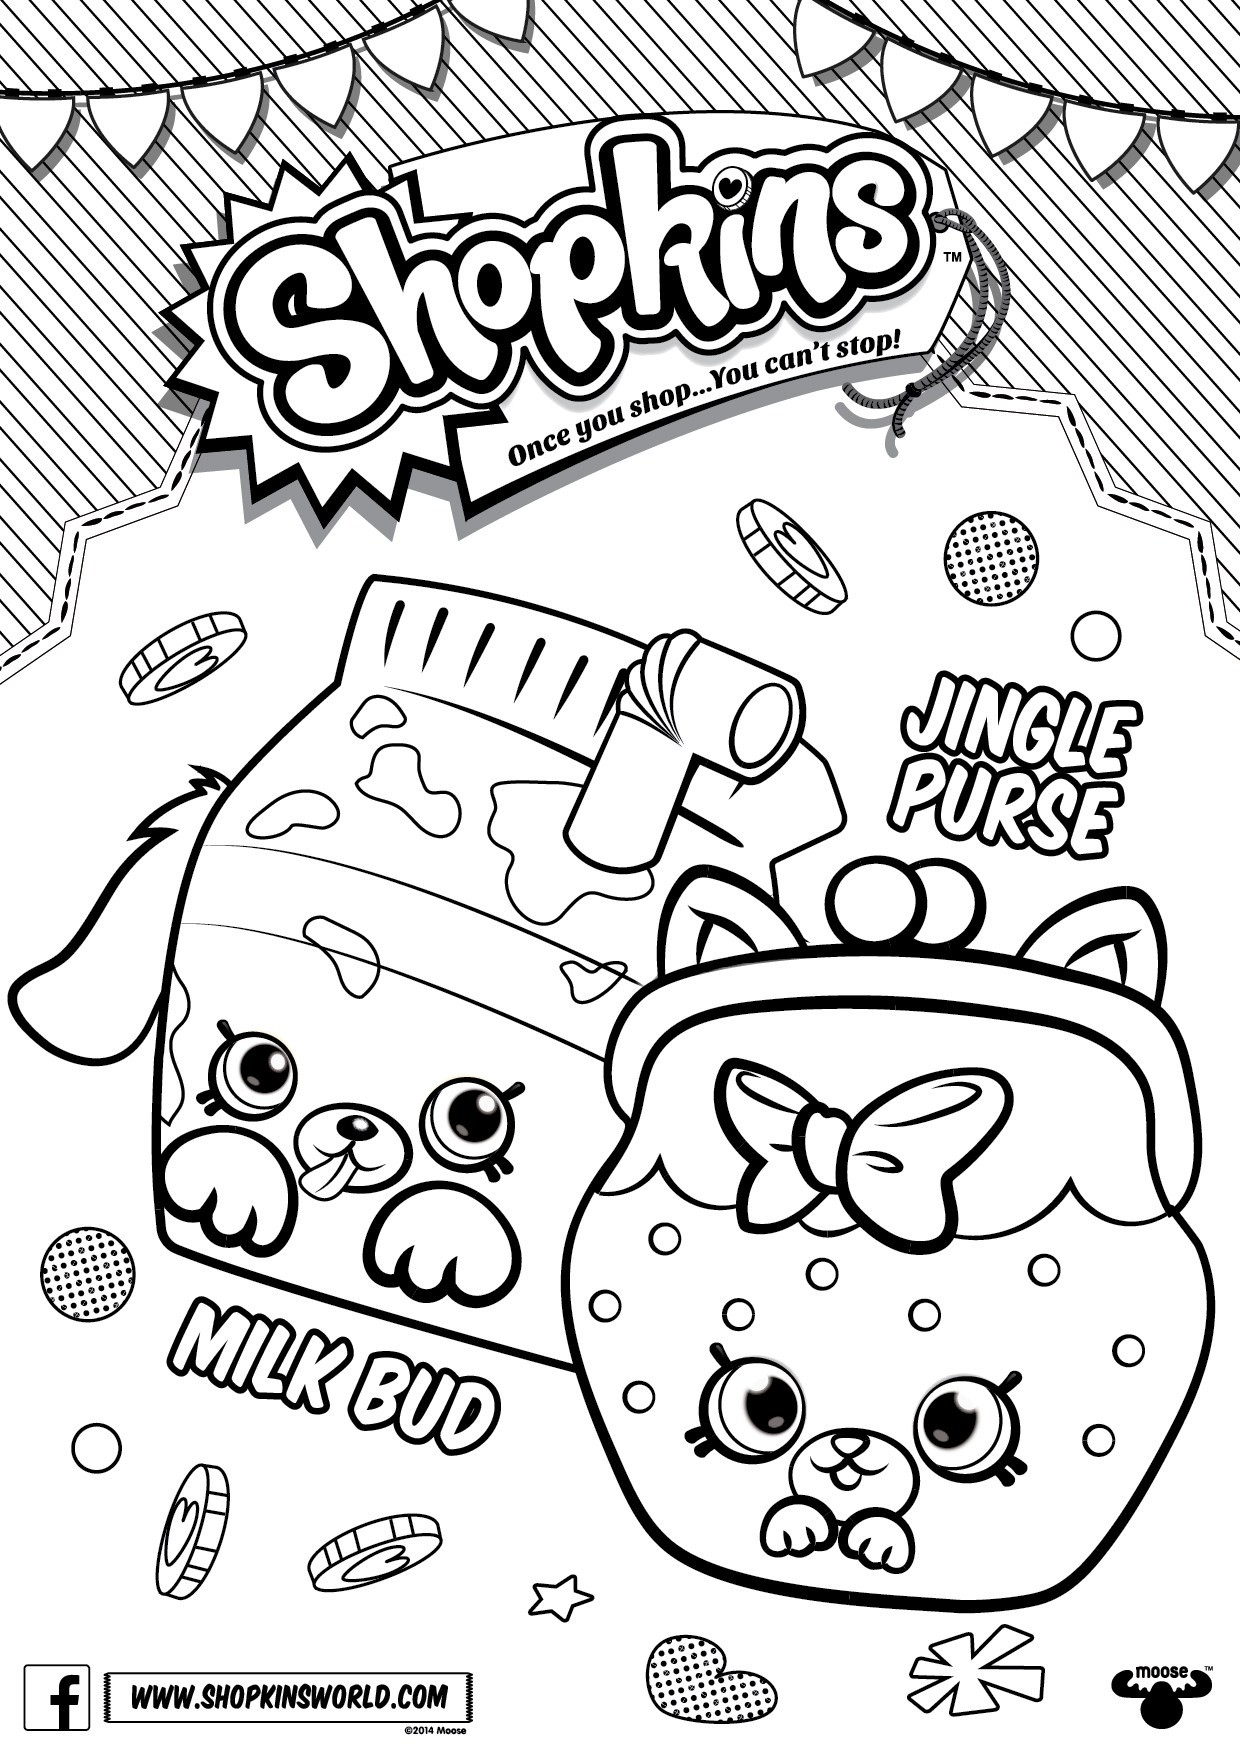 1240x1754 Shopkin Coloring Pages That You Can Print New